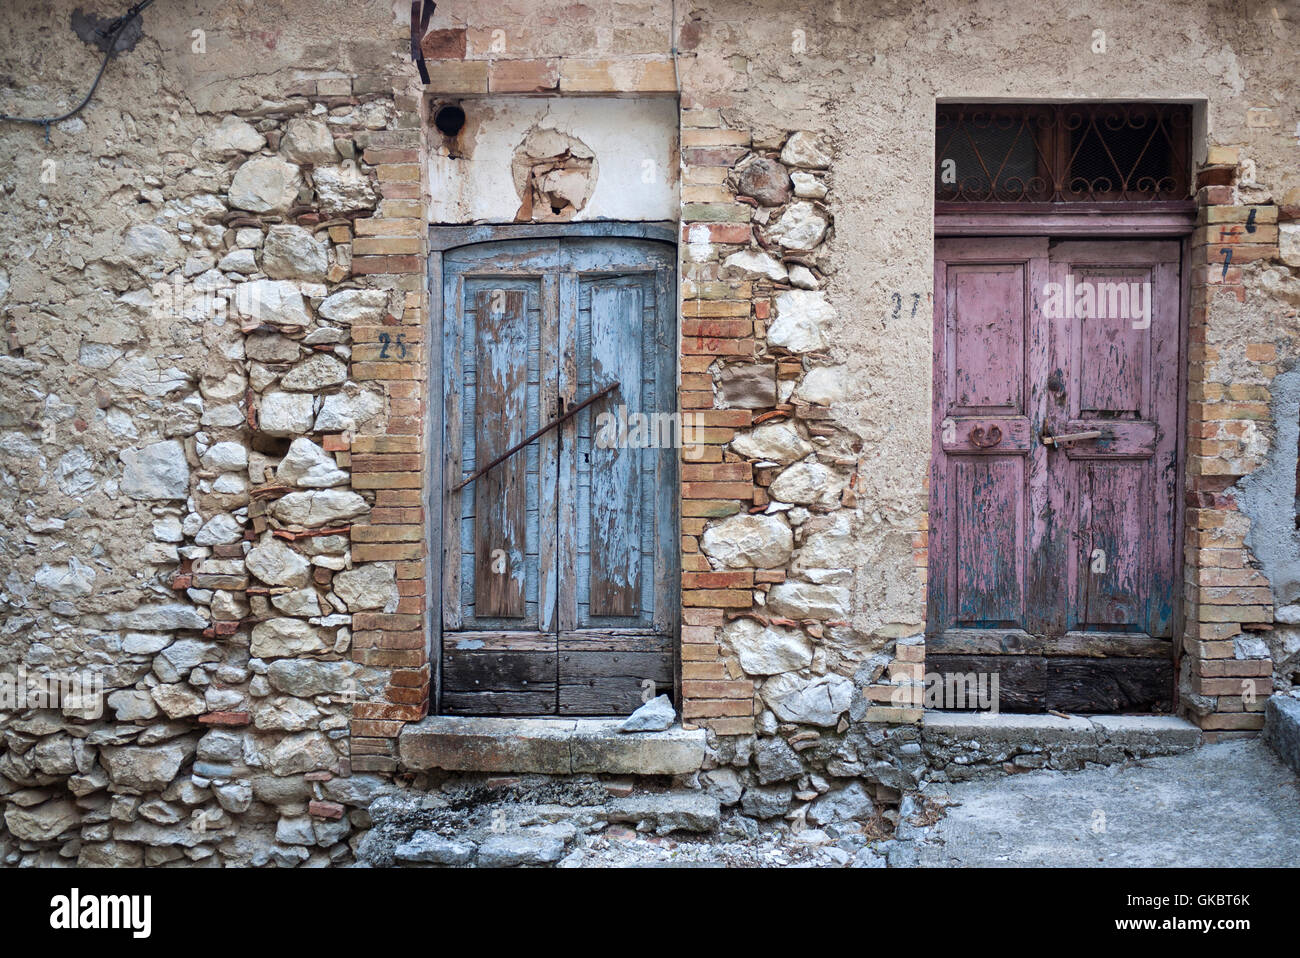 Old wooden doors in Corvara, Abruzzo, Italy. - Stock Image